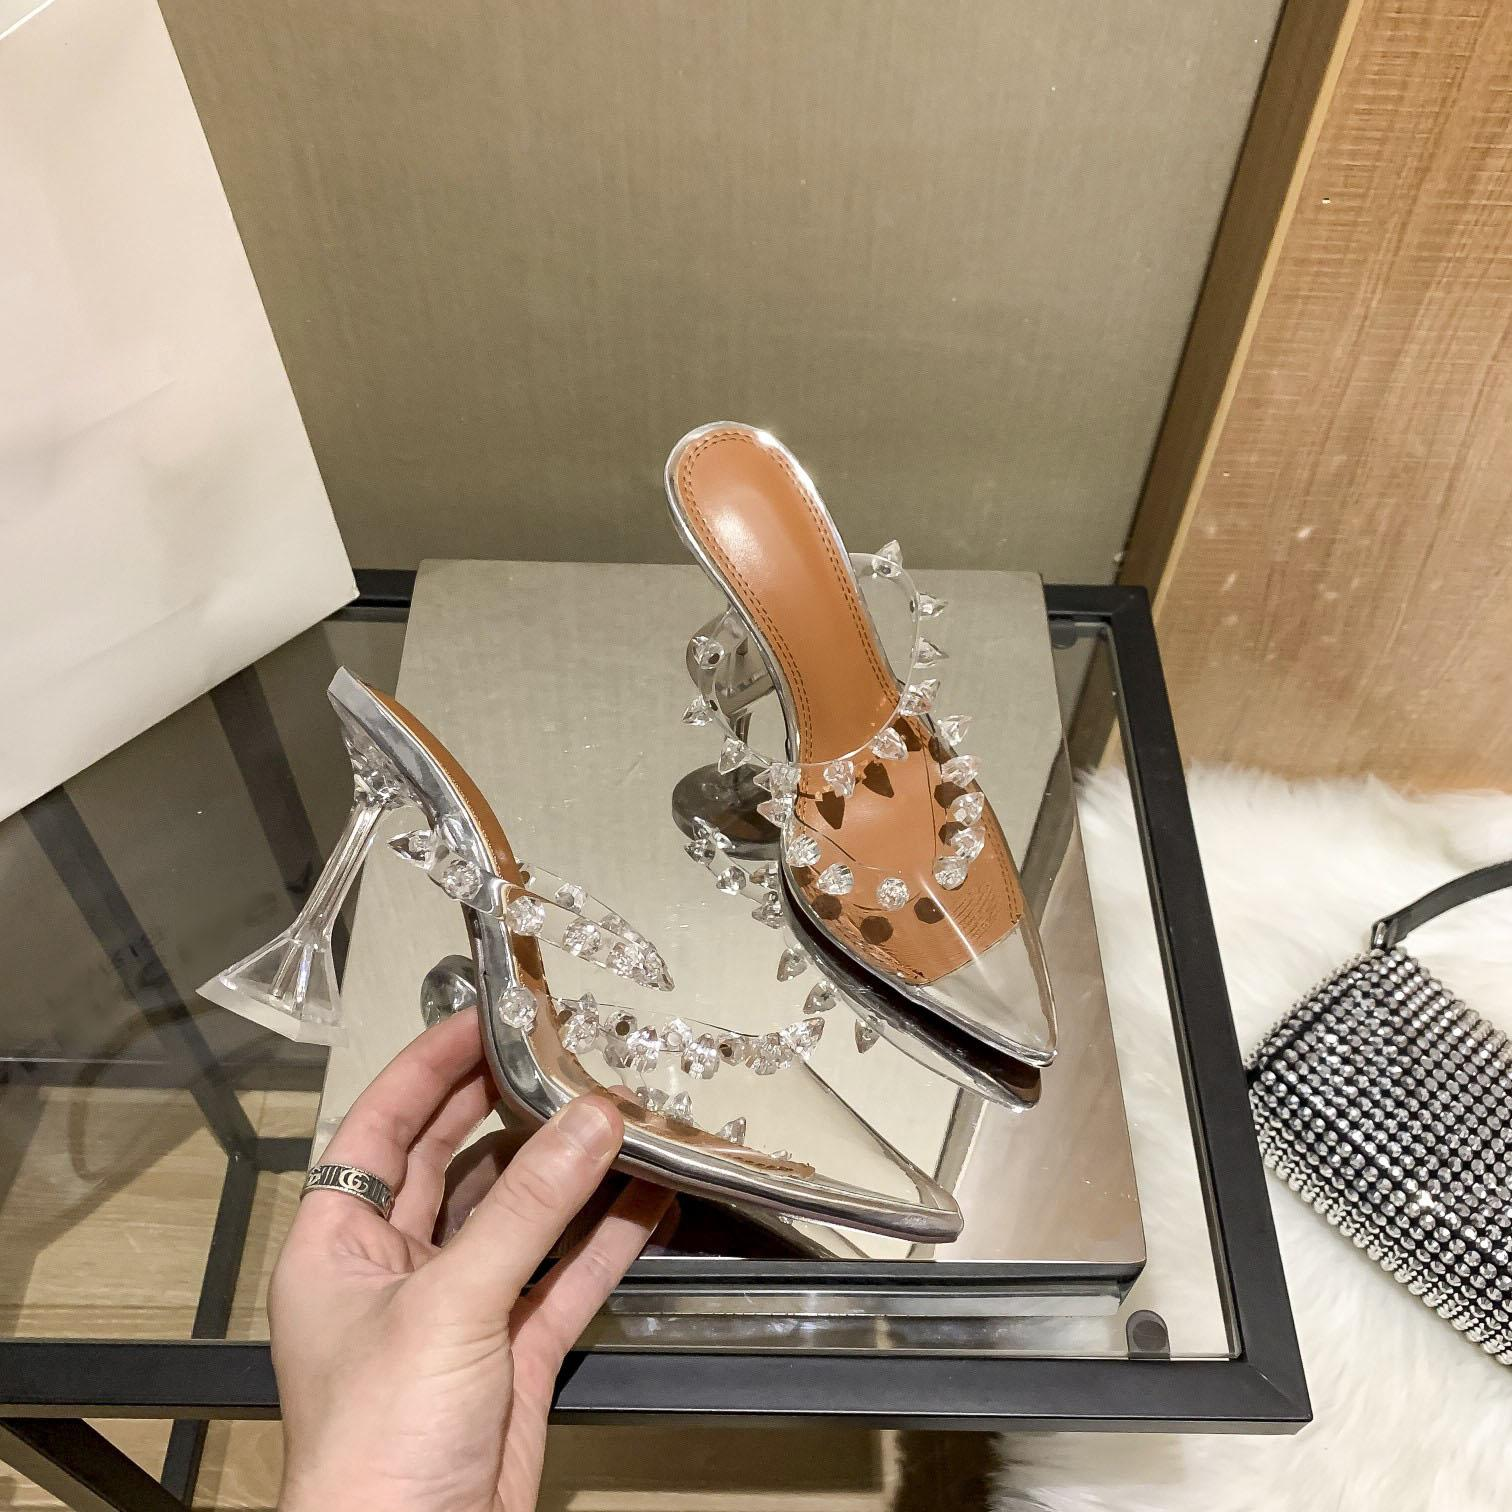 2021Cinderella transparent nail slipper made in Italy of delicate high-heeled shoes with high: flat, 7 cm and 9 cm